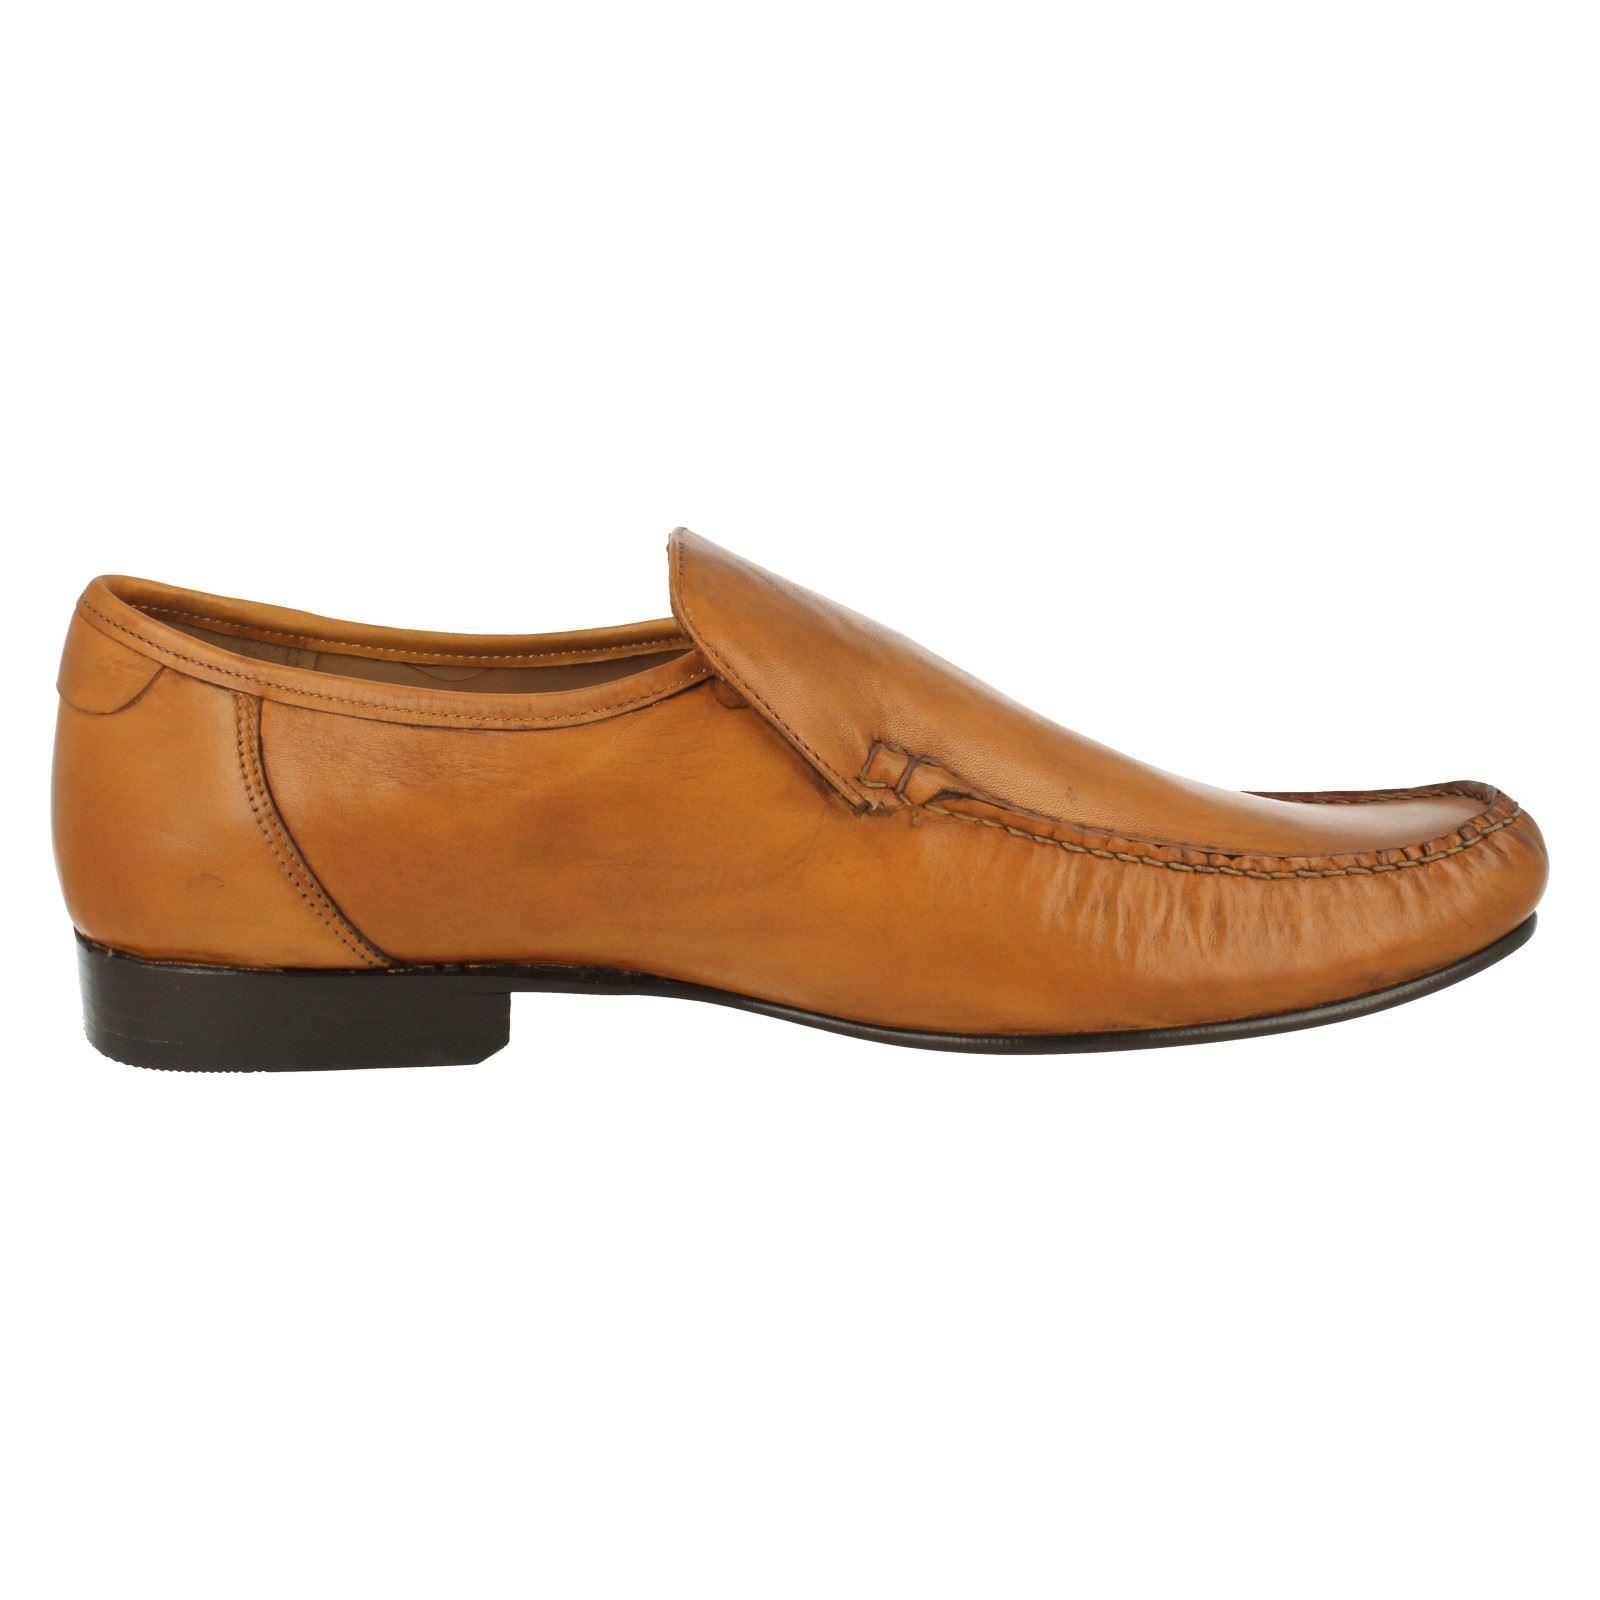 Mens Grenson Moccasin Shoes